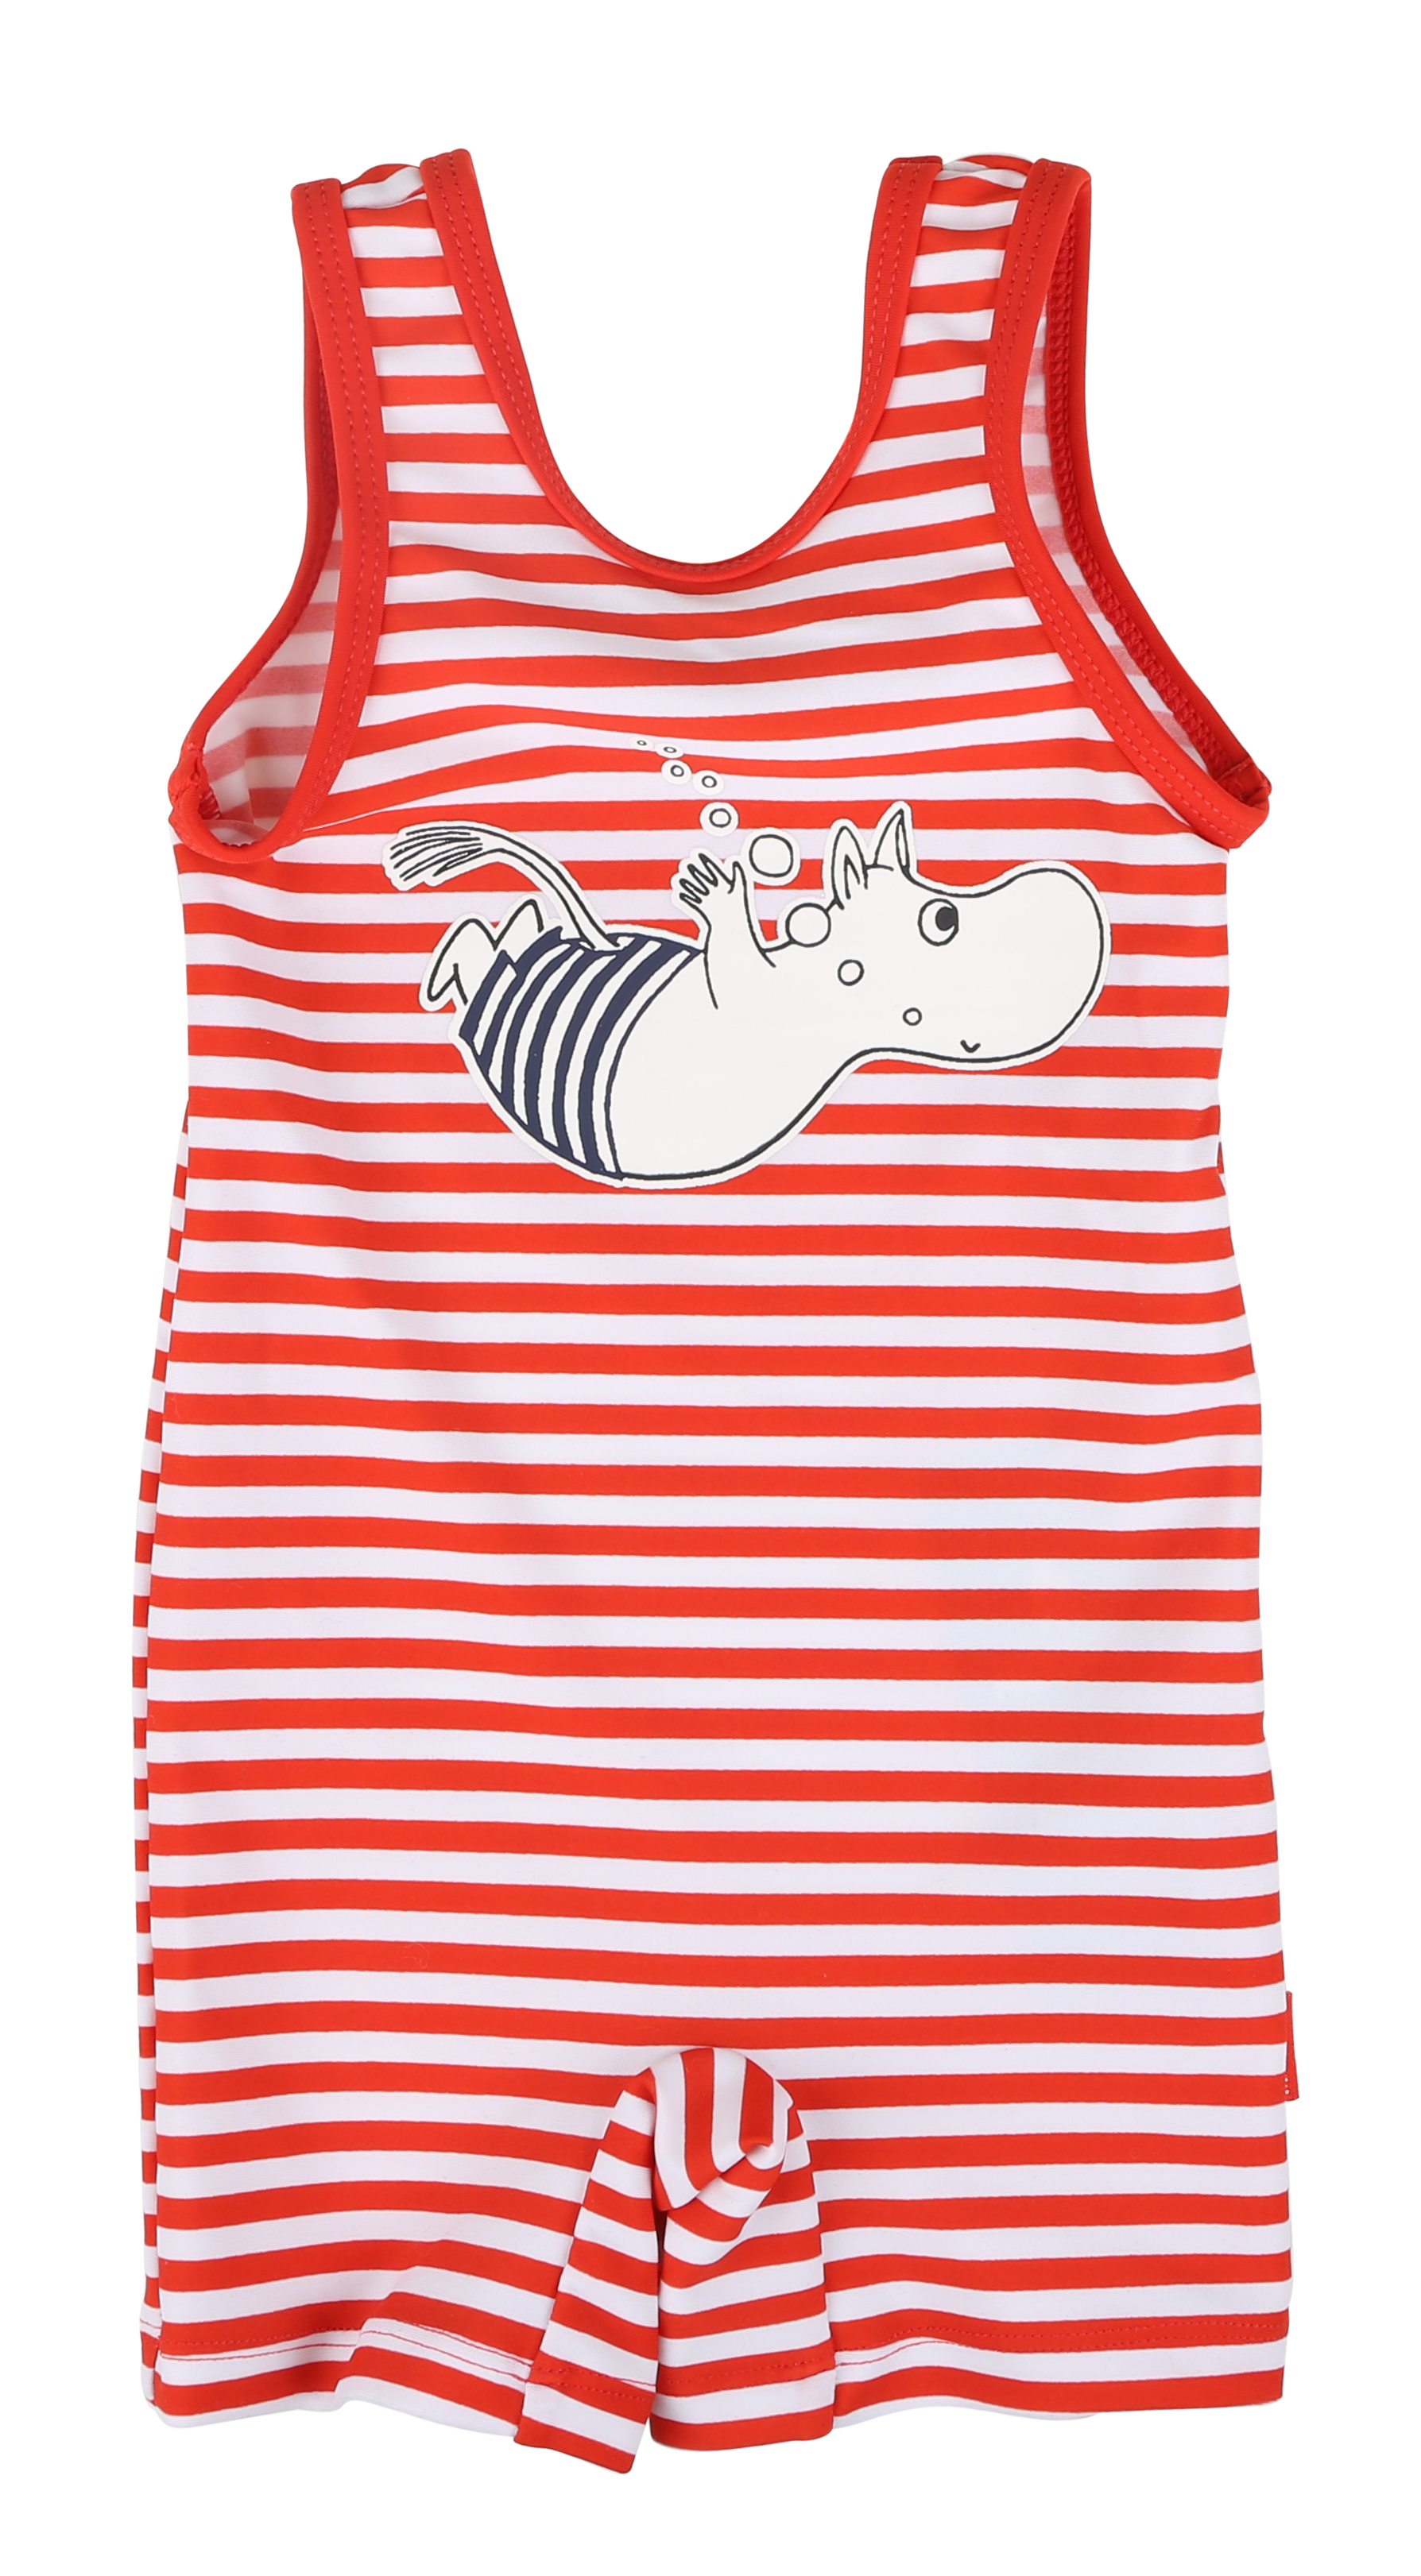 Martinex Moomin swimsuit stripe red